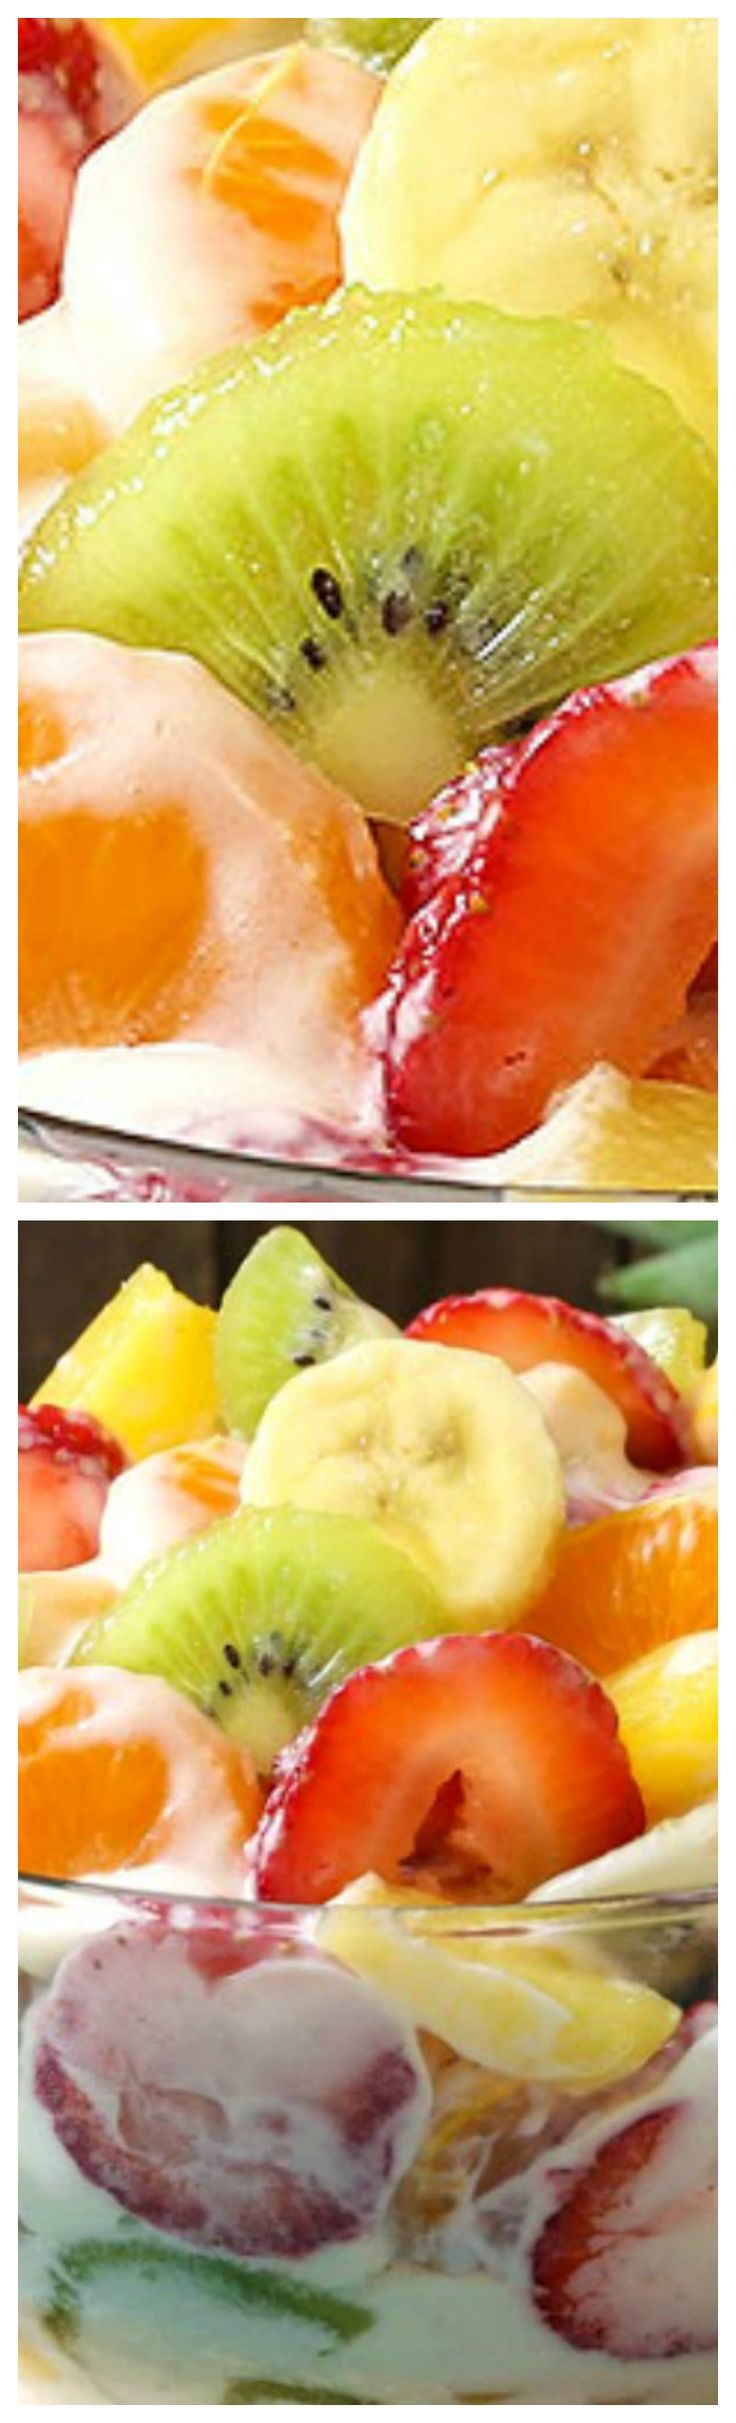 Hawaiian Cheesecake Salad ~ So simply with fresh tropical fruit and a rich and creamy cheesecake filling to create the most glorious fruit salad ever... Every bite is absolutely bursting with island flavor and you are going to go nuts over this recipe!